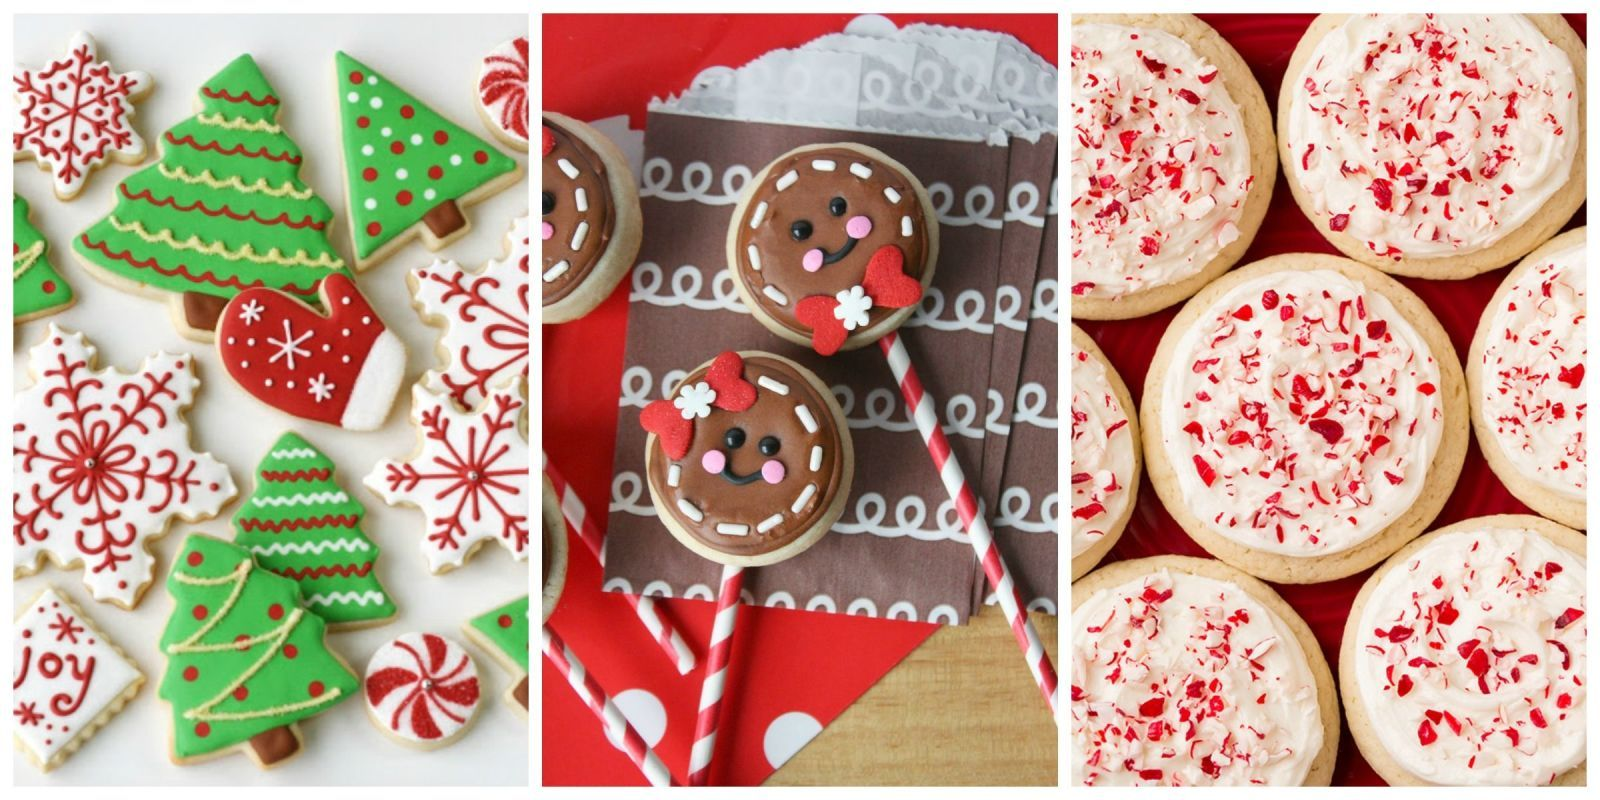 11 christmas sugar cookies that will make your holidays merry and bright countrylivingcom